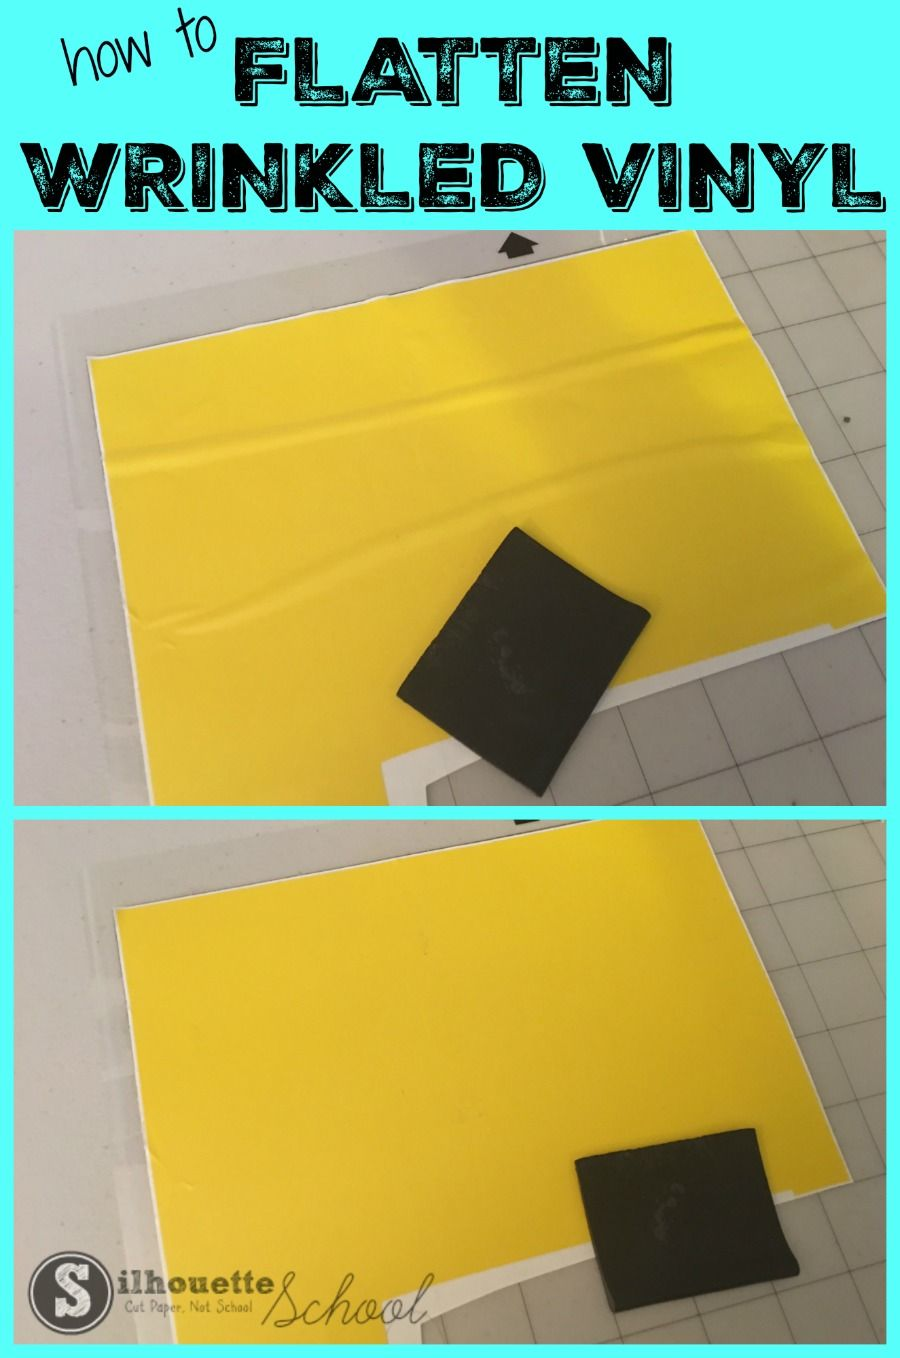 How To Fix Wrinkled Vinyl Silhouette Hack For Removing Wrinkles And Bubbles Cricut Vinyl Silhouette Vinyl Silhouette School